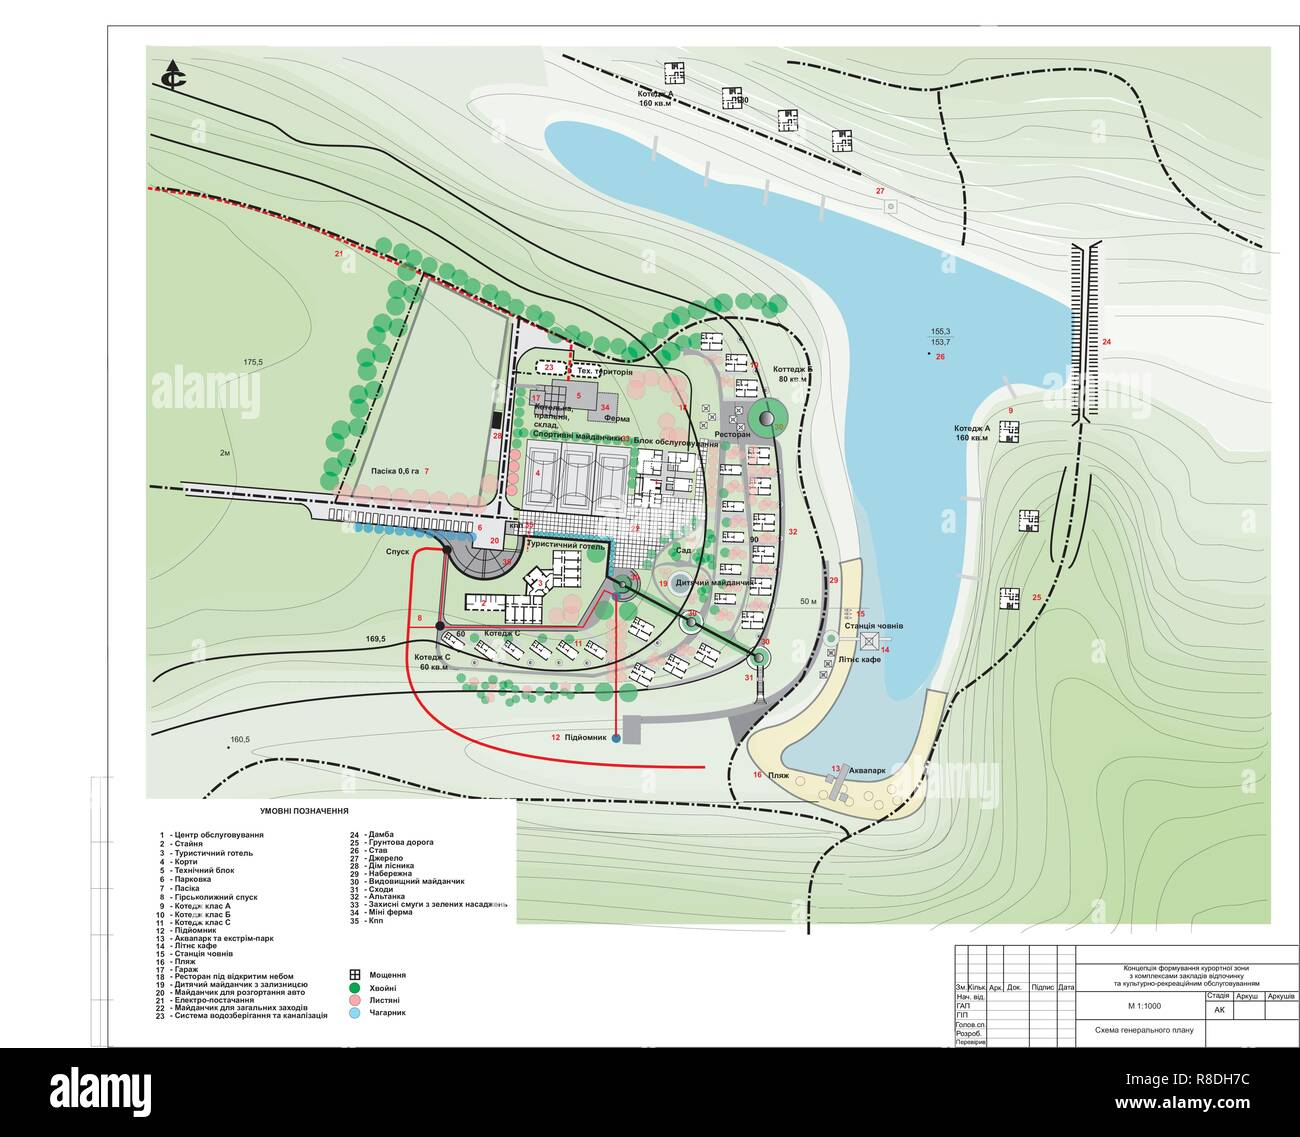 Draft master plan for the residence of the recreation complex - Stock Vector